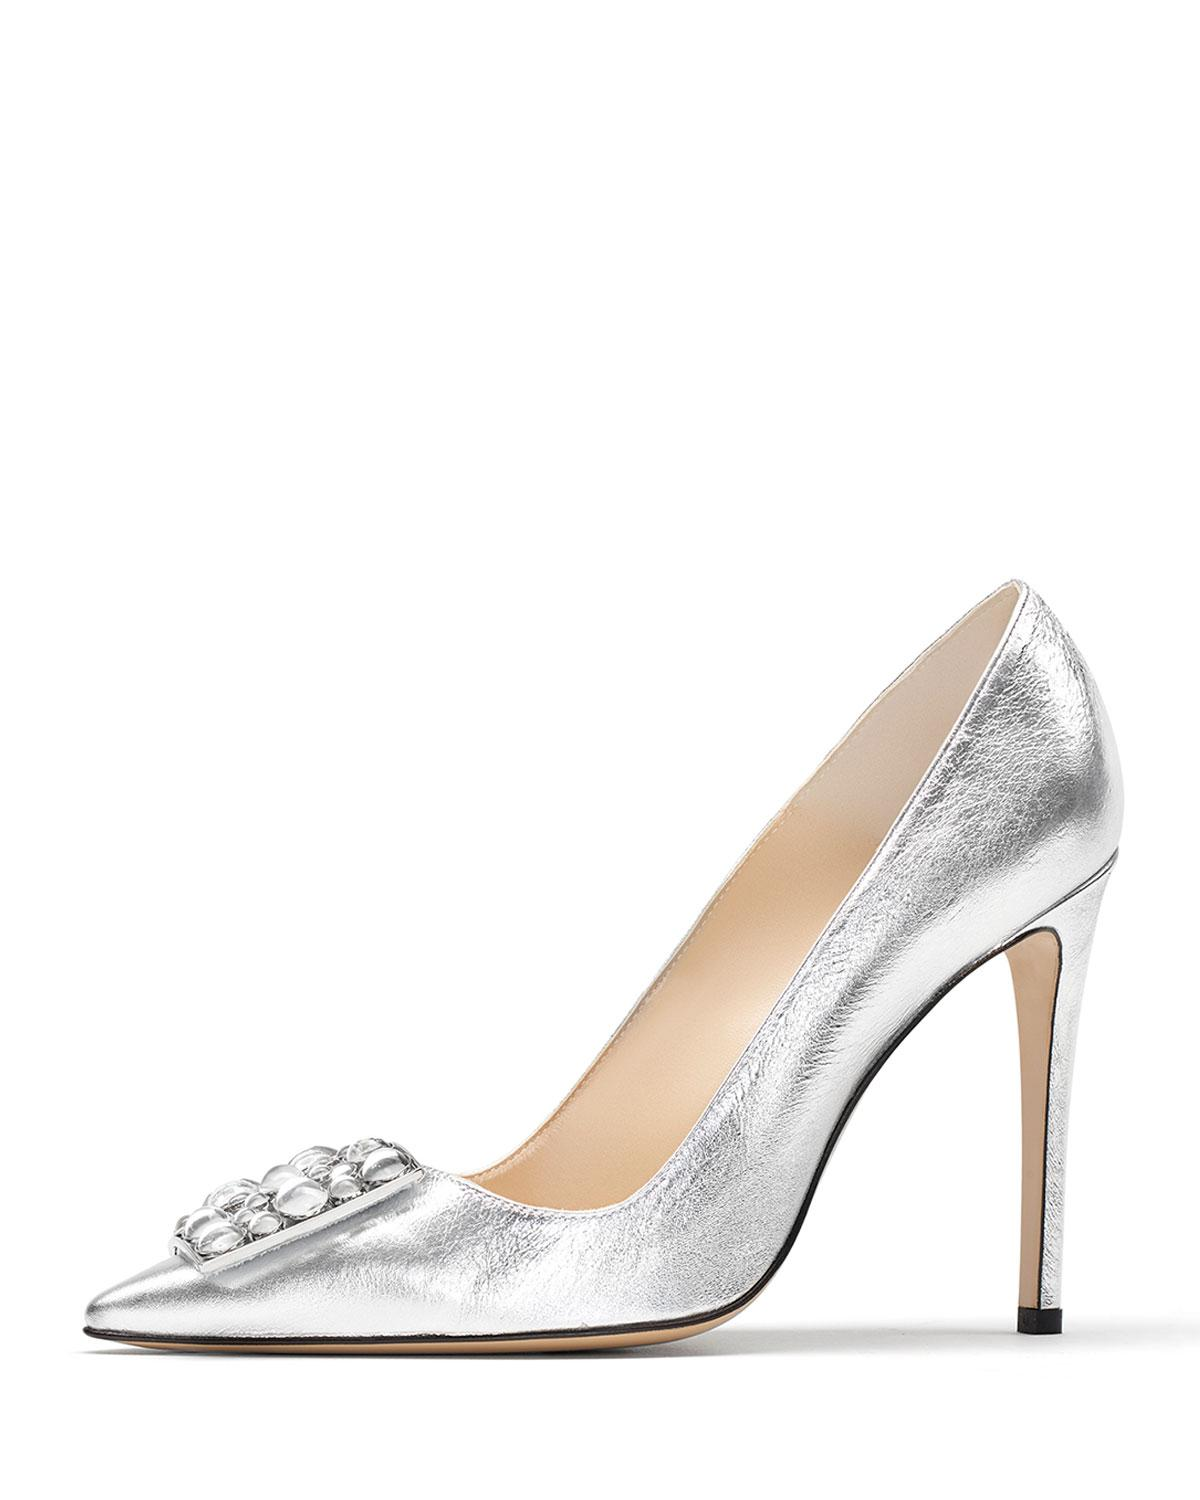 Paul AndrewOtto embellished pumps